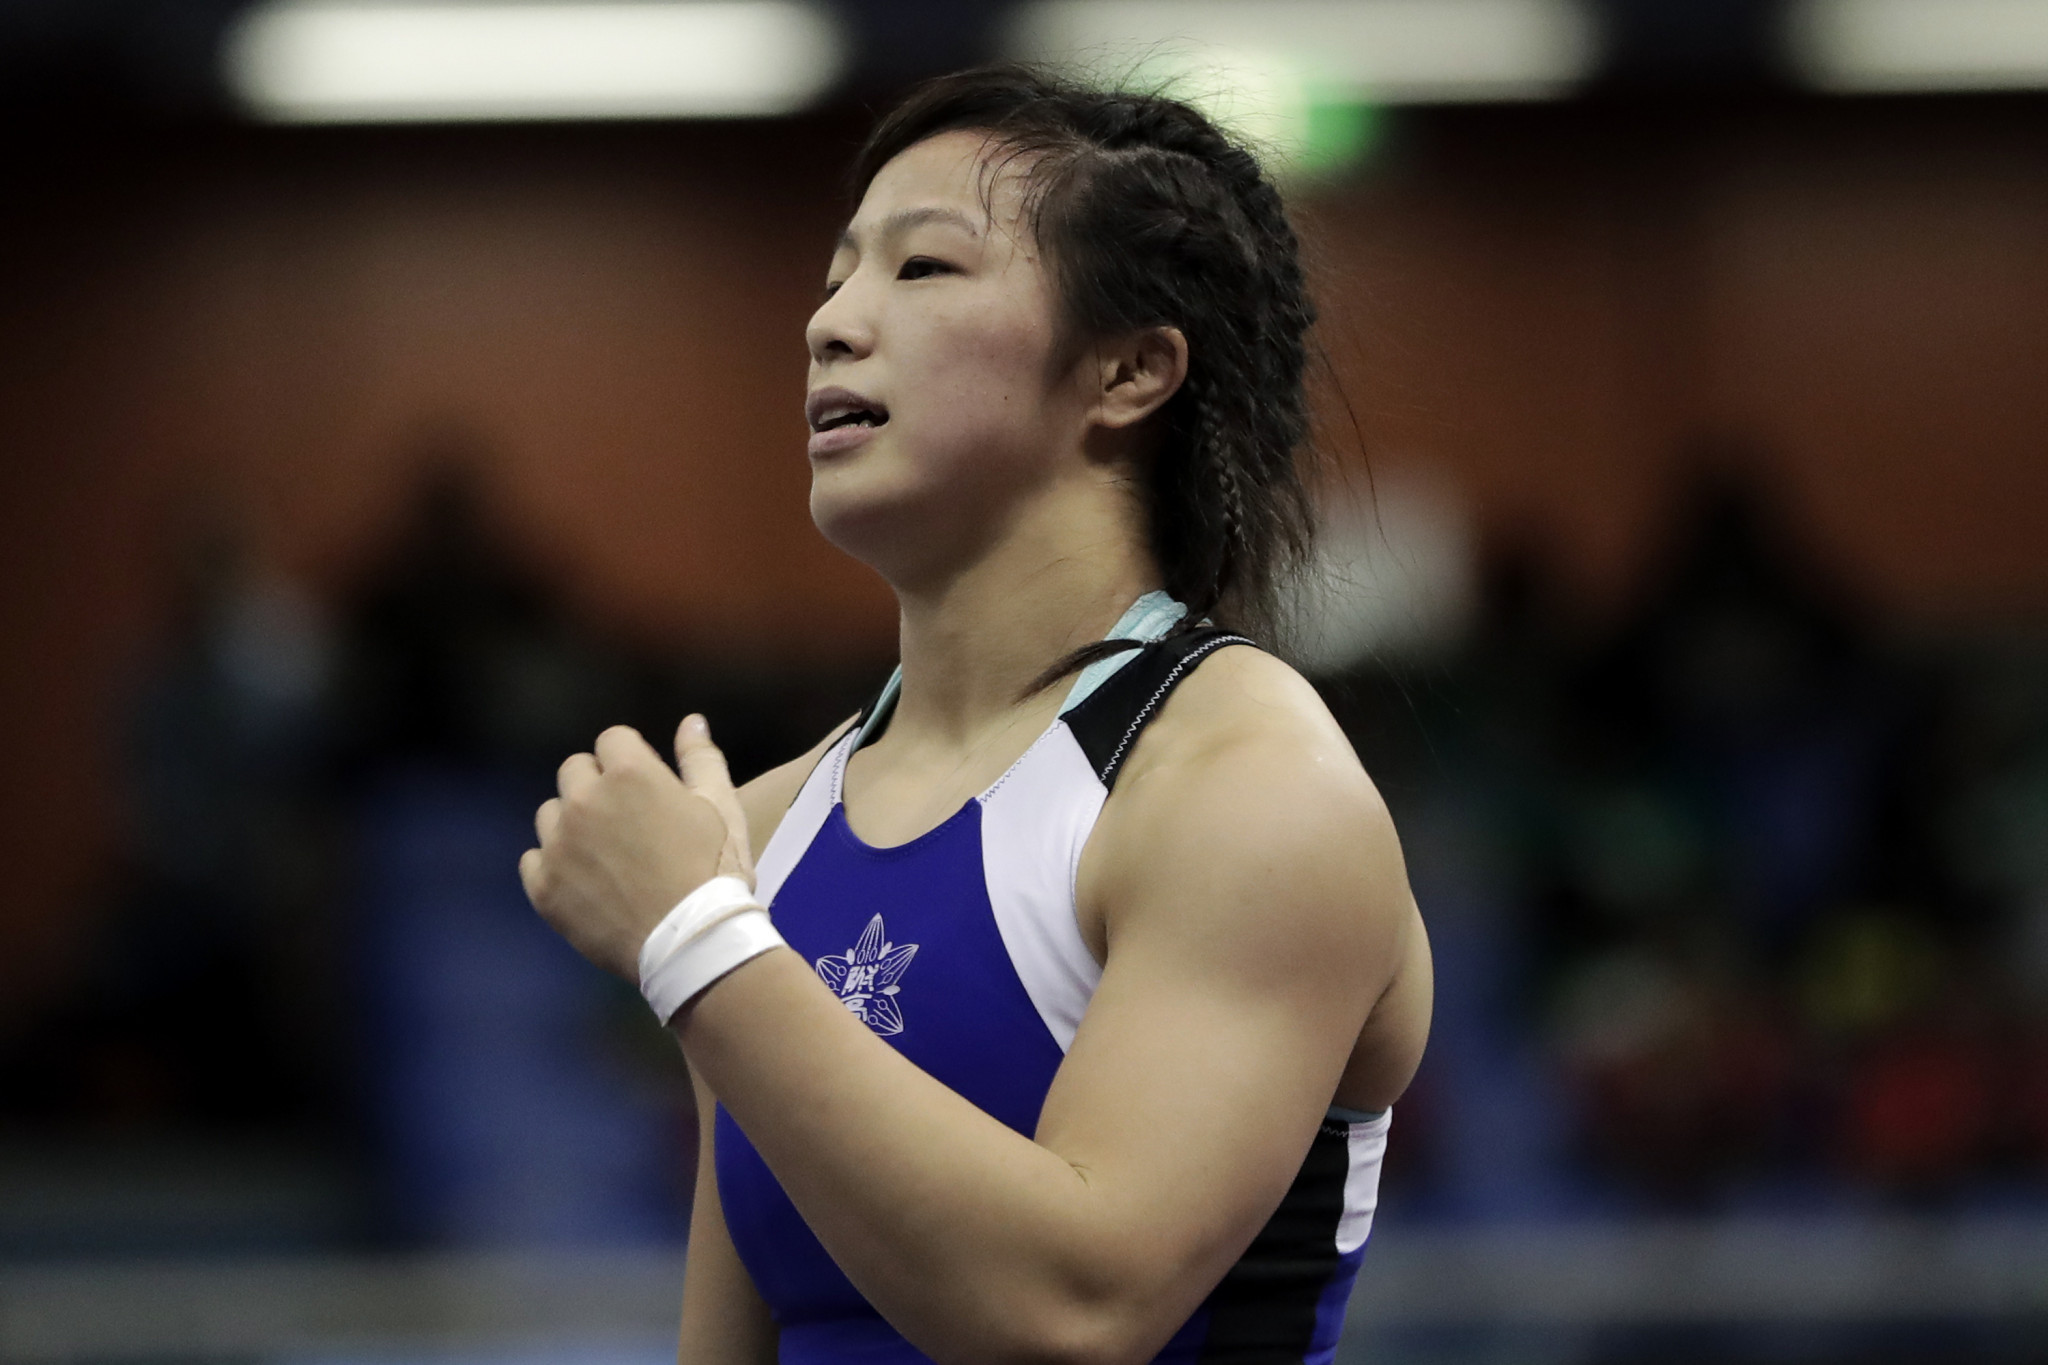 Japan win three golds during night of women's wrestling at UWW Under-23 World Championships